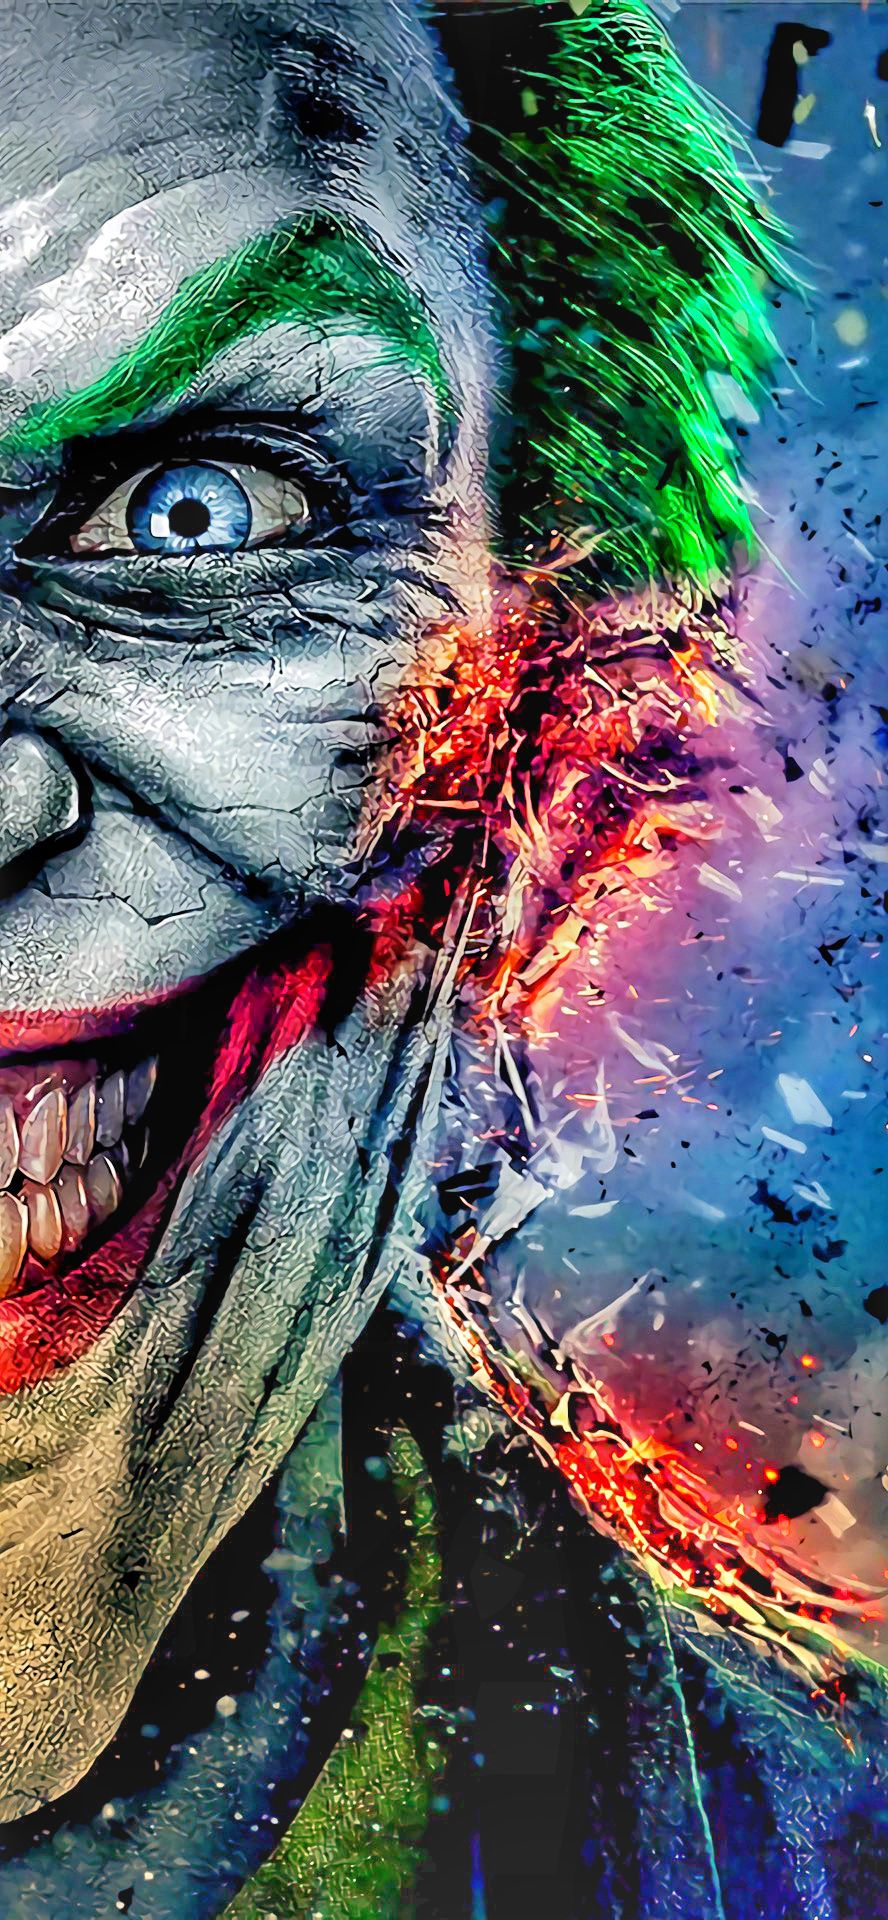 Wallpapers Iphone Xs Max Joker Wallpapers Best Iphone Wallpapers Art Wallpaper